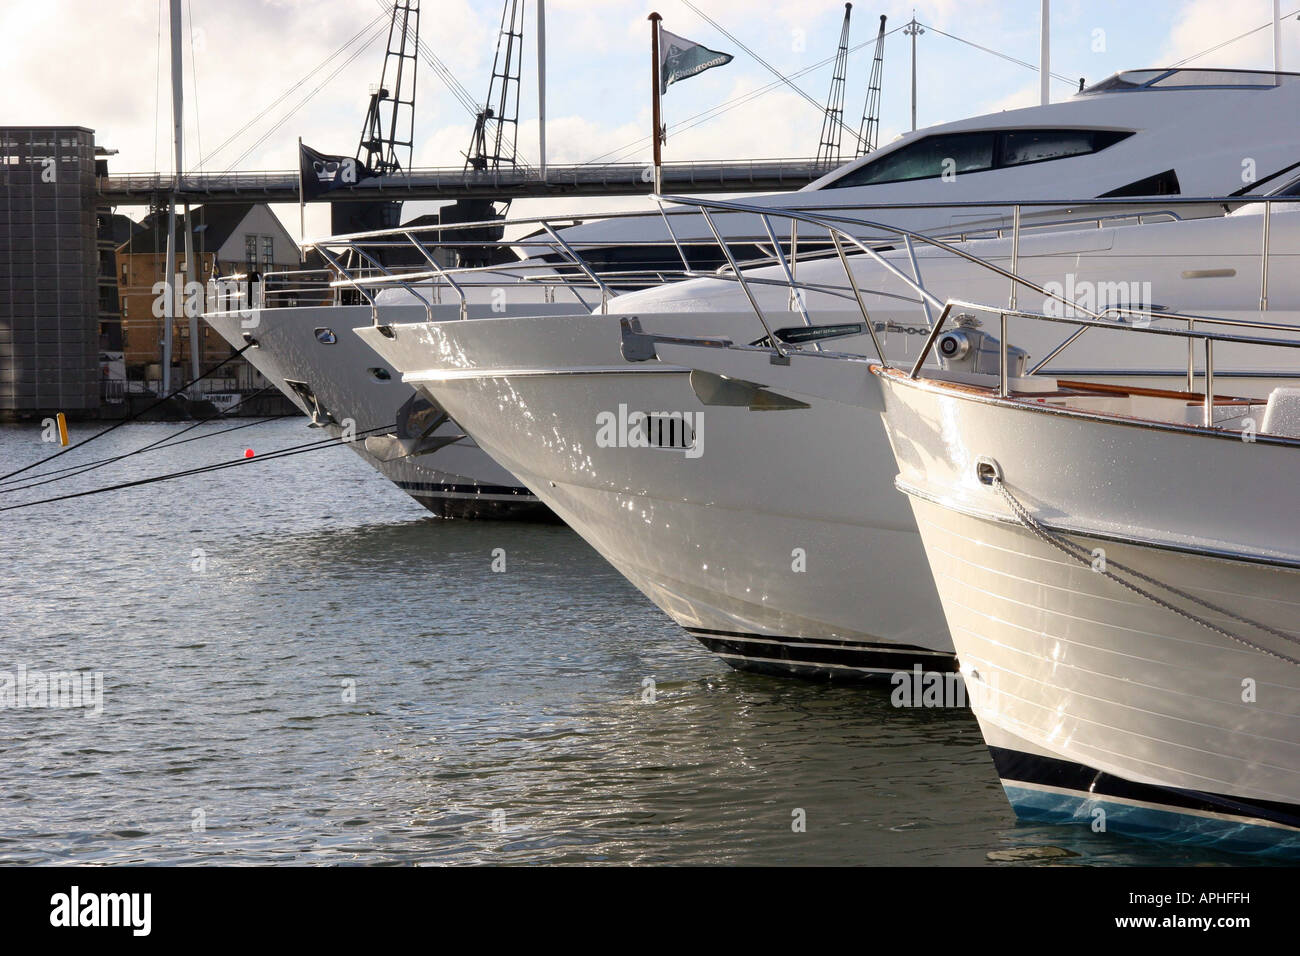 View across the bow of three yachts moored up at the London Boat Show Stock Photo